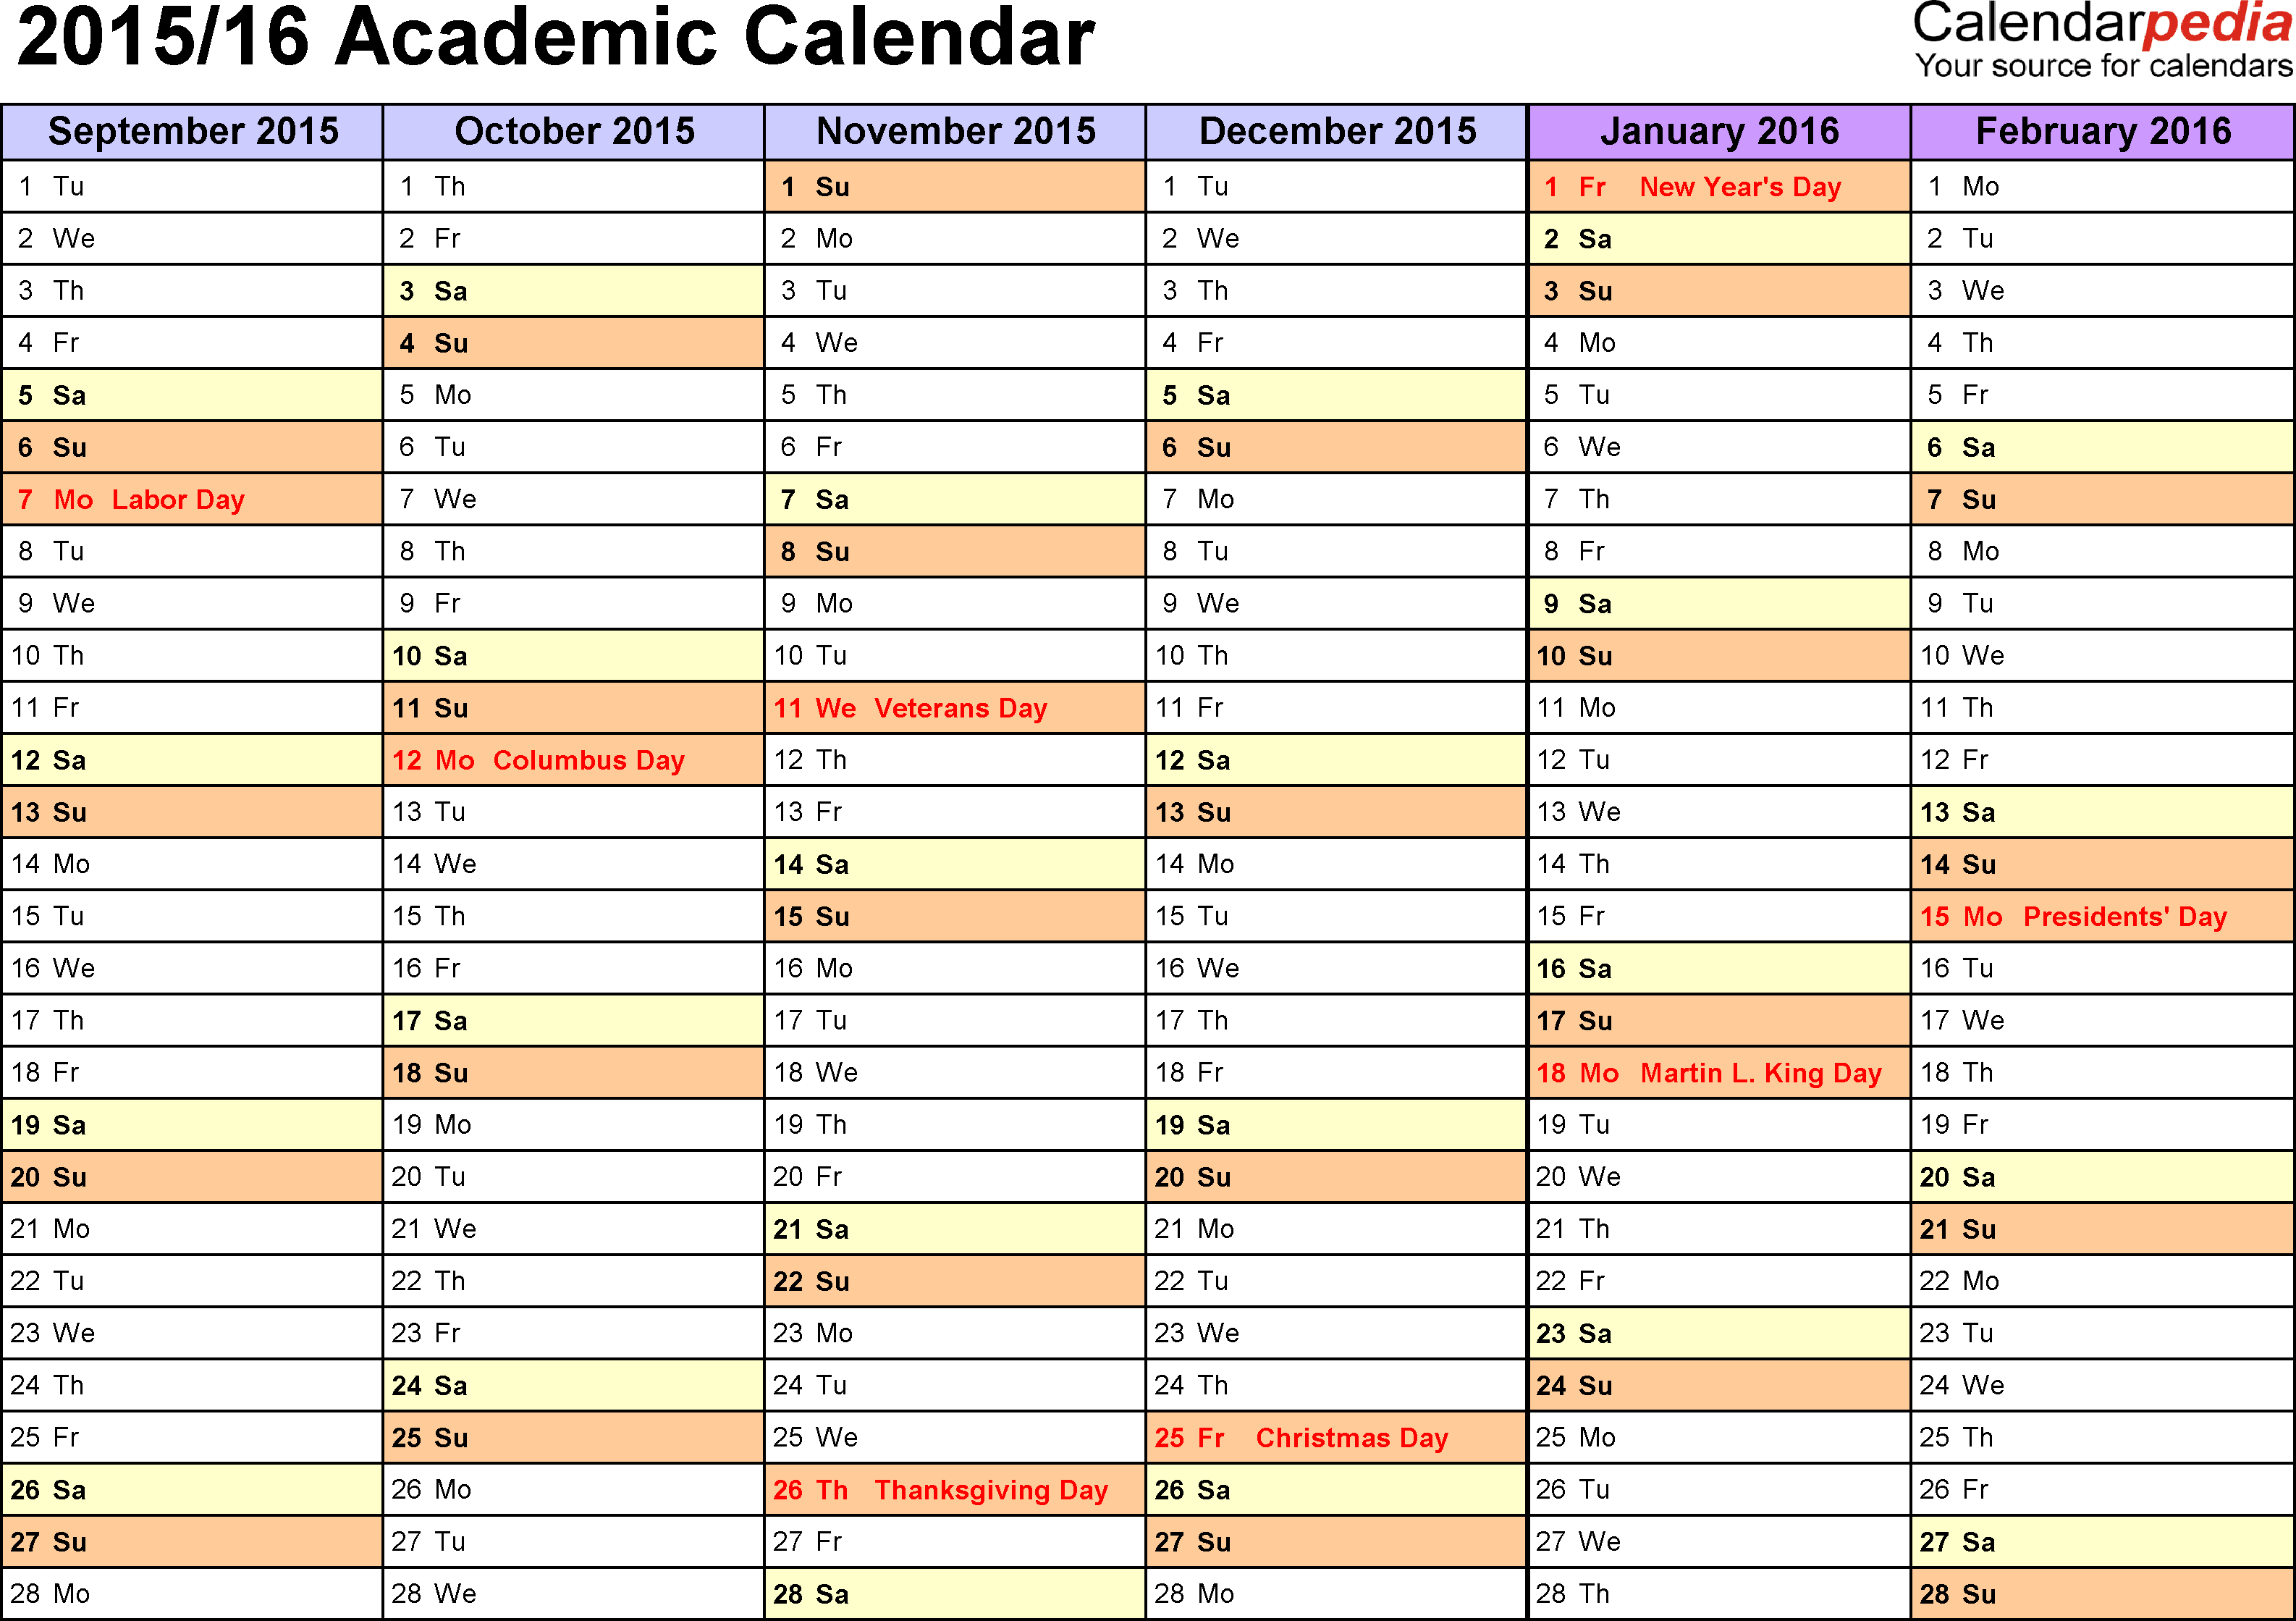 Template 3: Academic calendar 2015/16 for Excel, landscape orientation, months horizontally, 2 pages